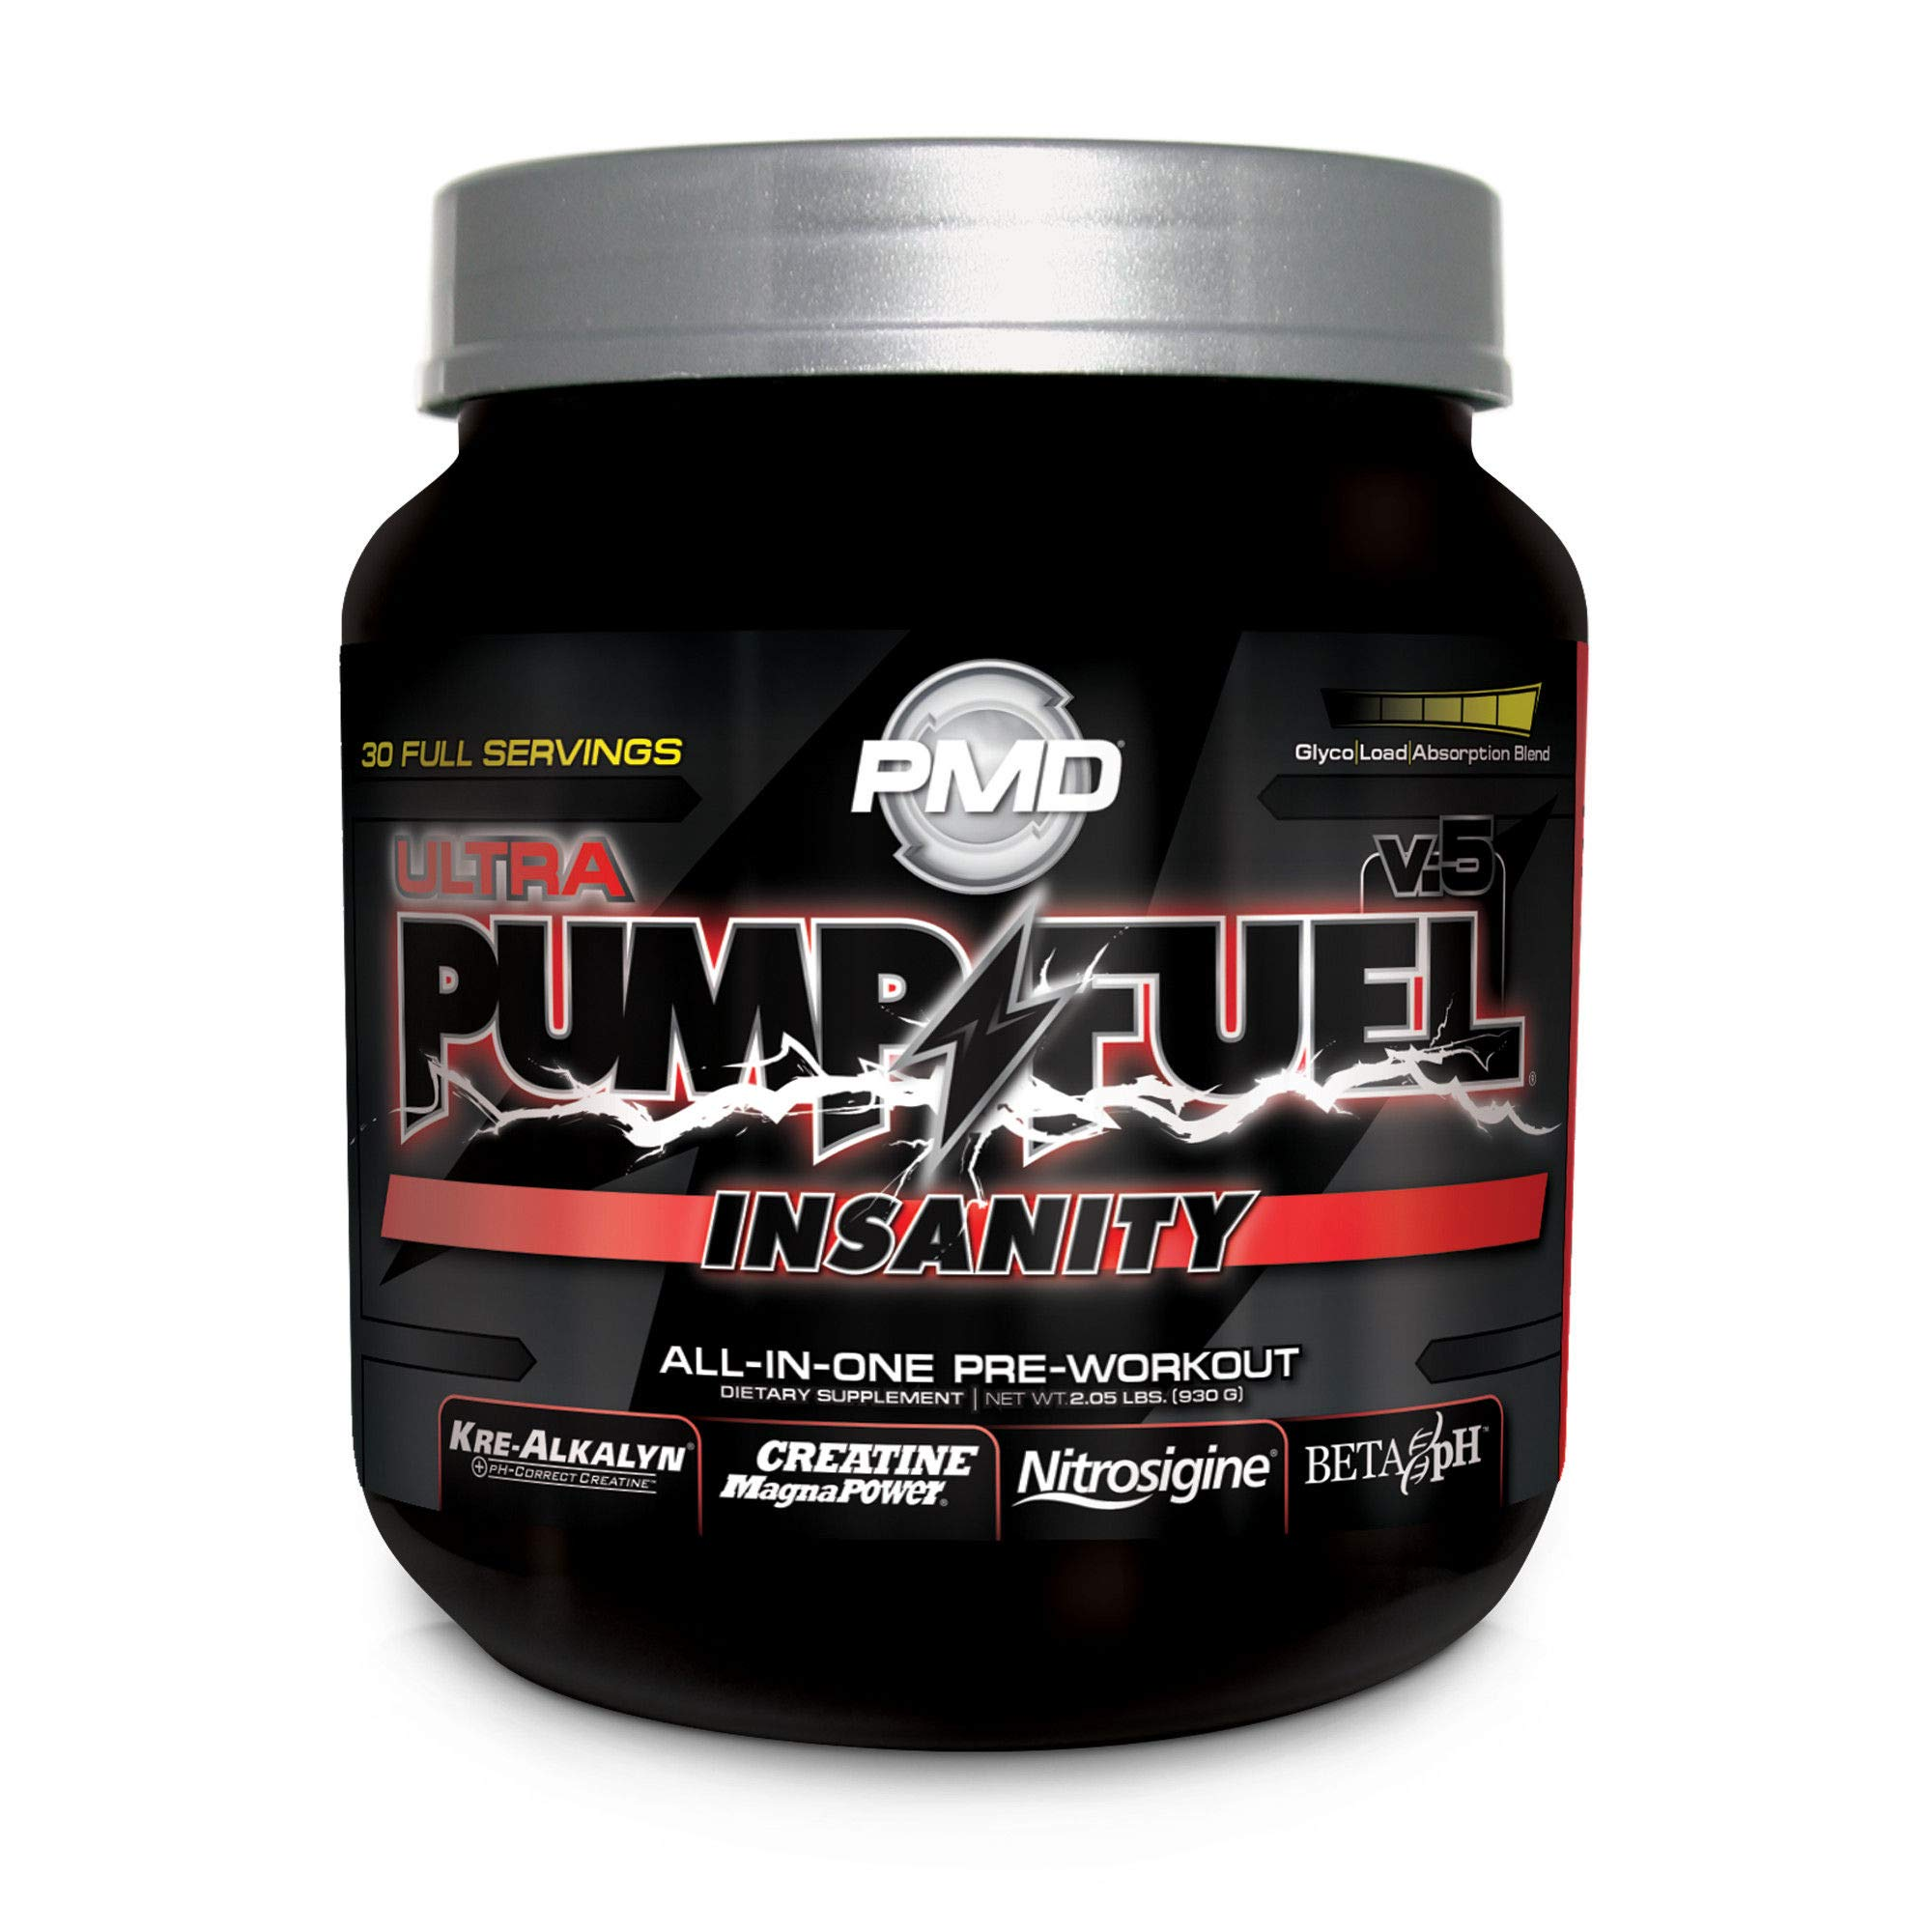 PMD Sports Ultra Pump Fuel Insanity - Pre Workout Drink for Energy, Strength, Endurance, Muscle Pumps and Recovery - Complex Carbohydrates and Amino Energy - Strawberry Slam - 30 Servings